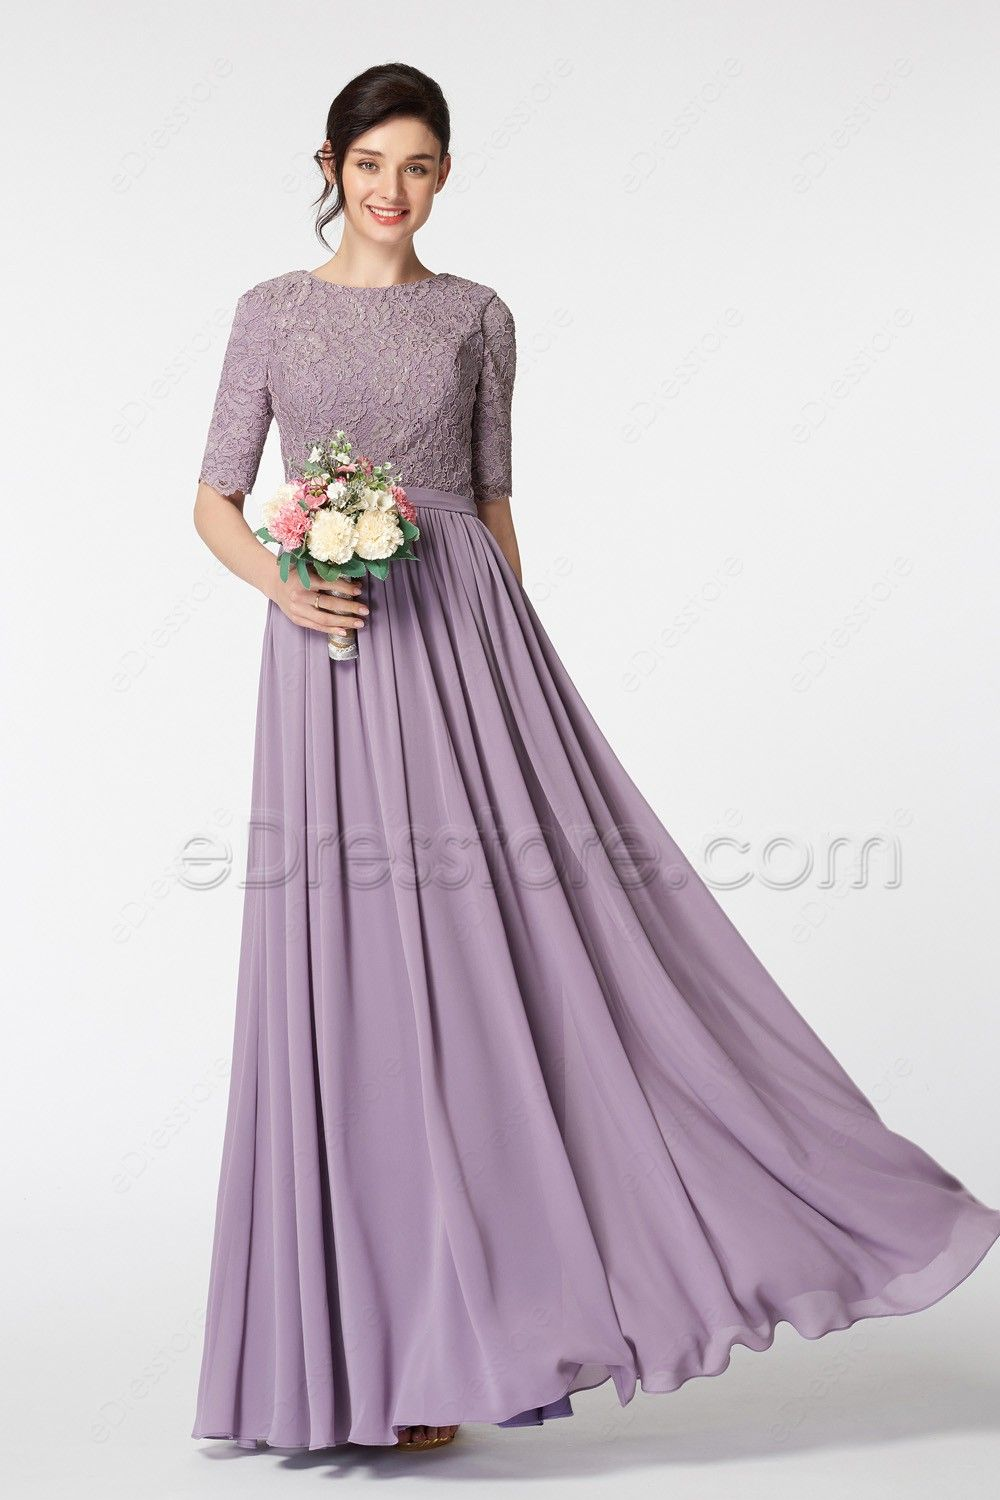 15a9494c320e The Wisteria bridesmaid dress features O neckline and lace bodice, elbow  length sleeves, fully lined and high back finish the modest look, ...